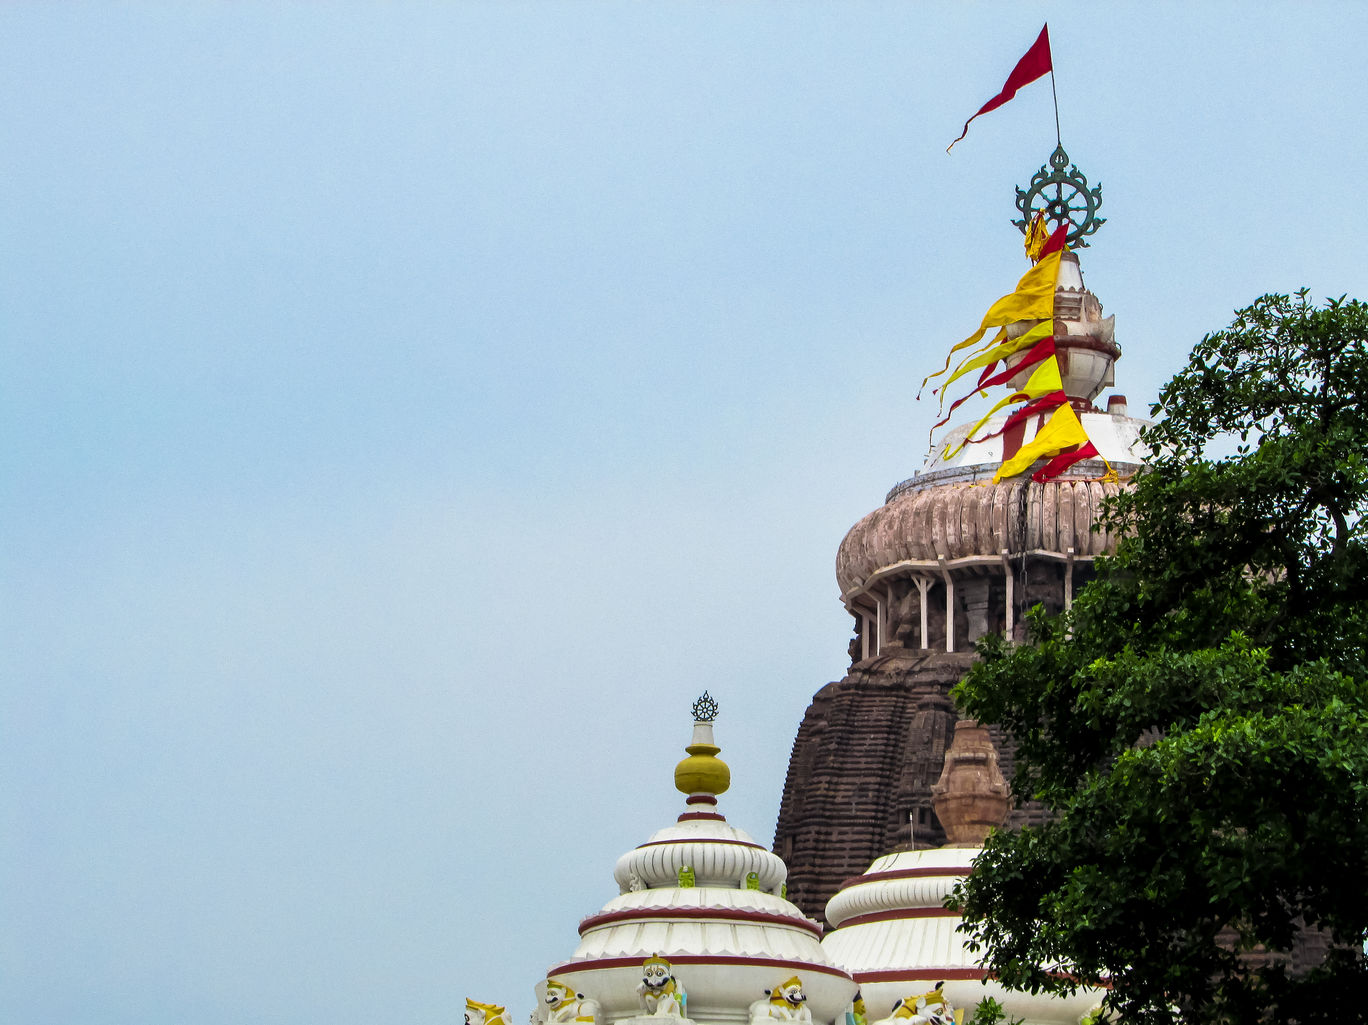 Roof flag of the Jagannath Temple of Puri